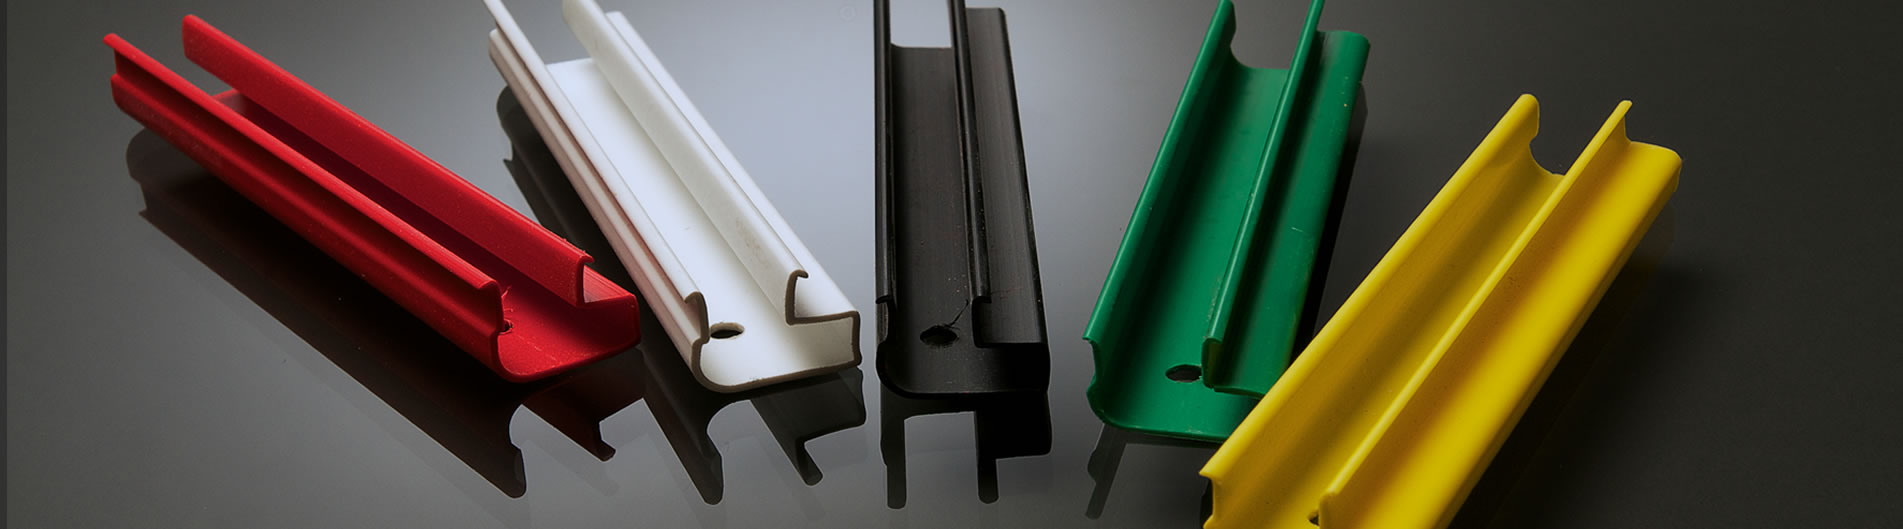 Our standard Ducavin rigid PVC compounds and dry blends are used in many applications